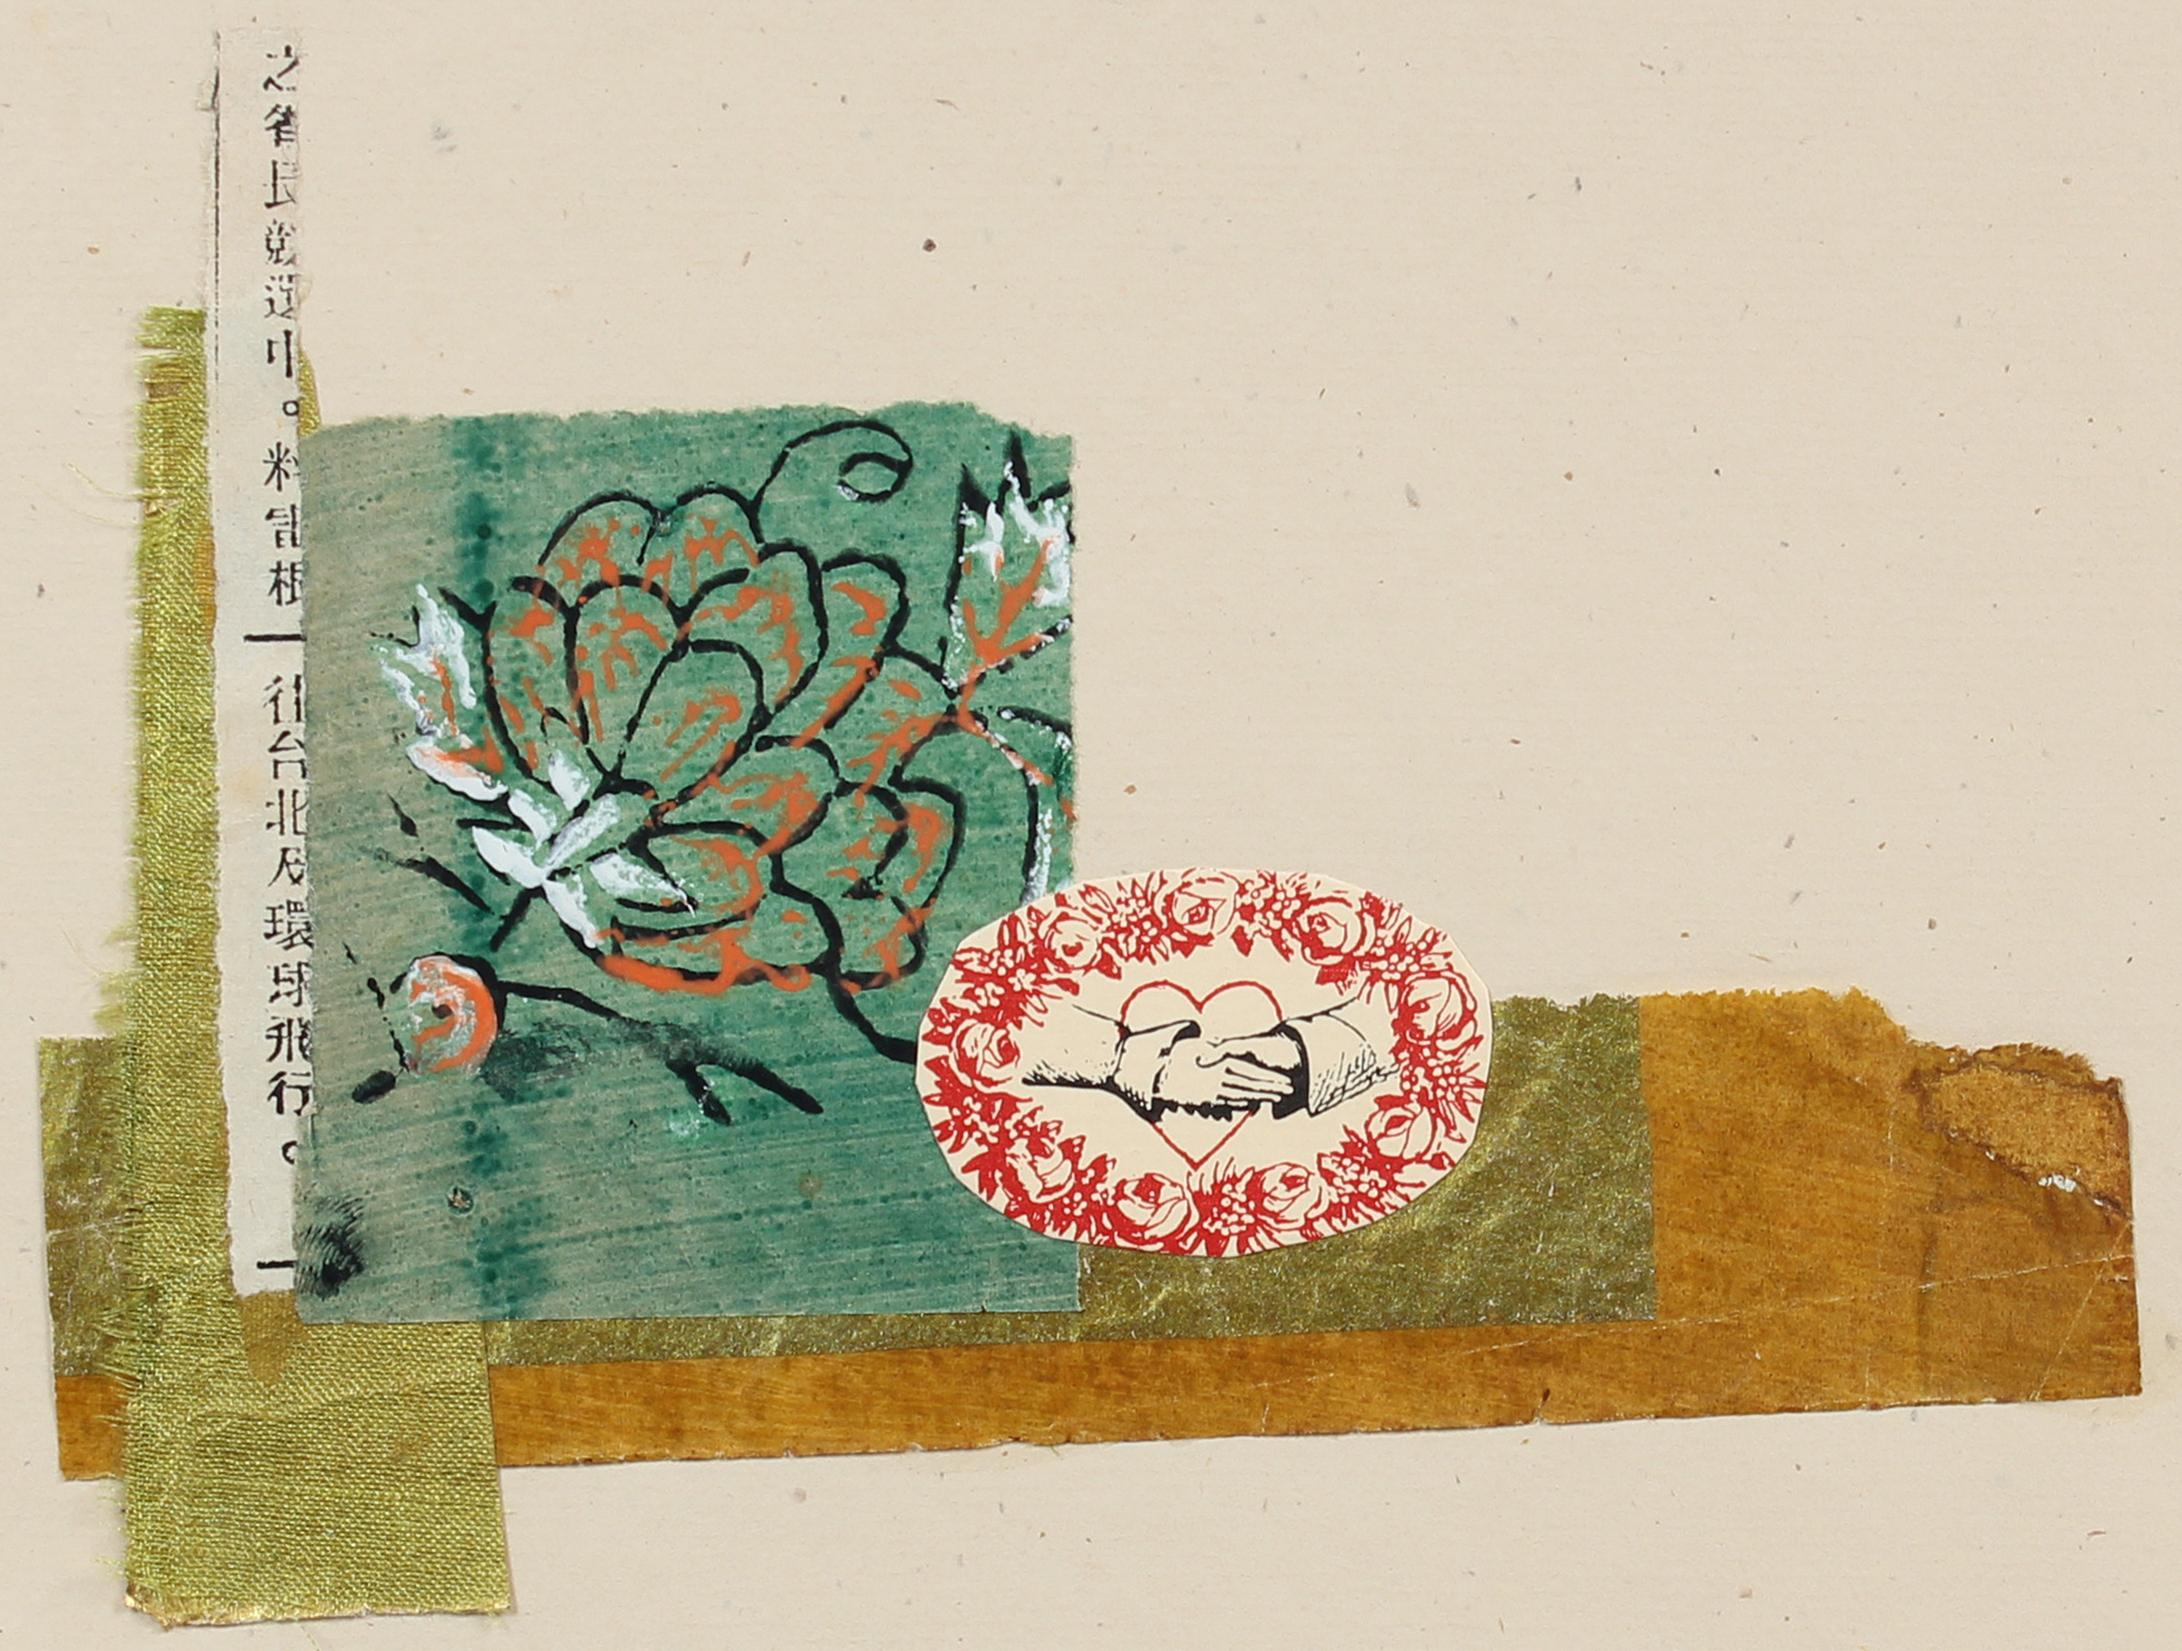 Romantic Mixed Media Collage with Turquoise Flower & Red Heart, July 1972